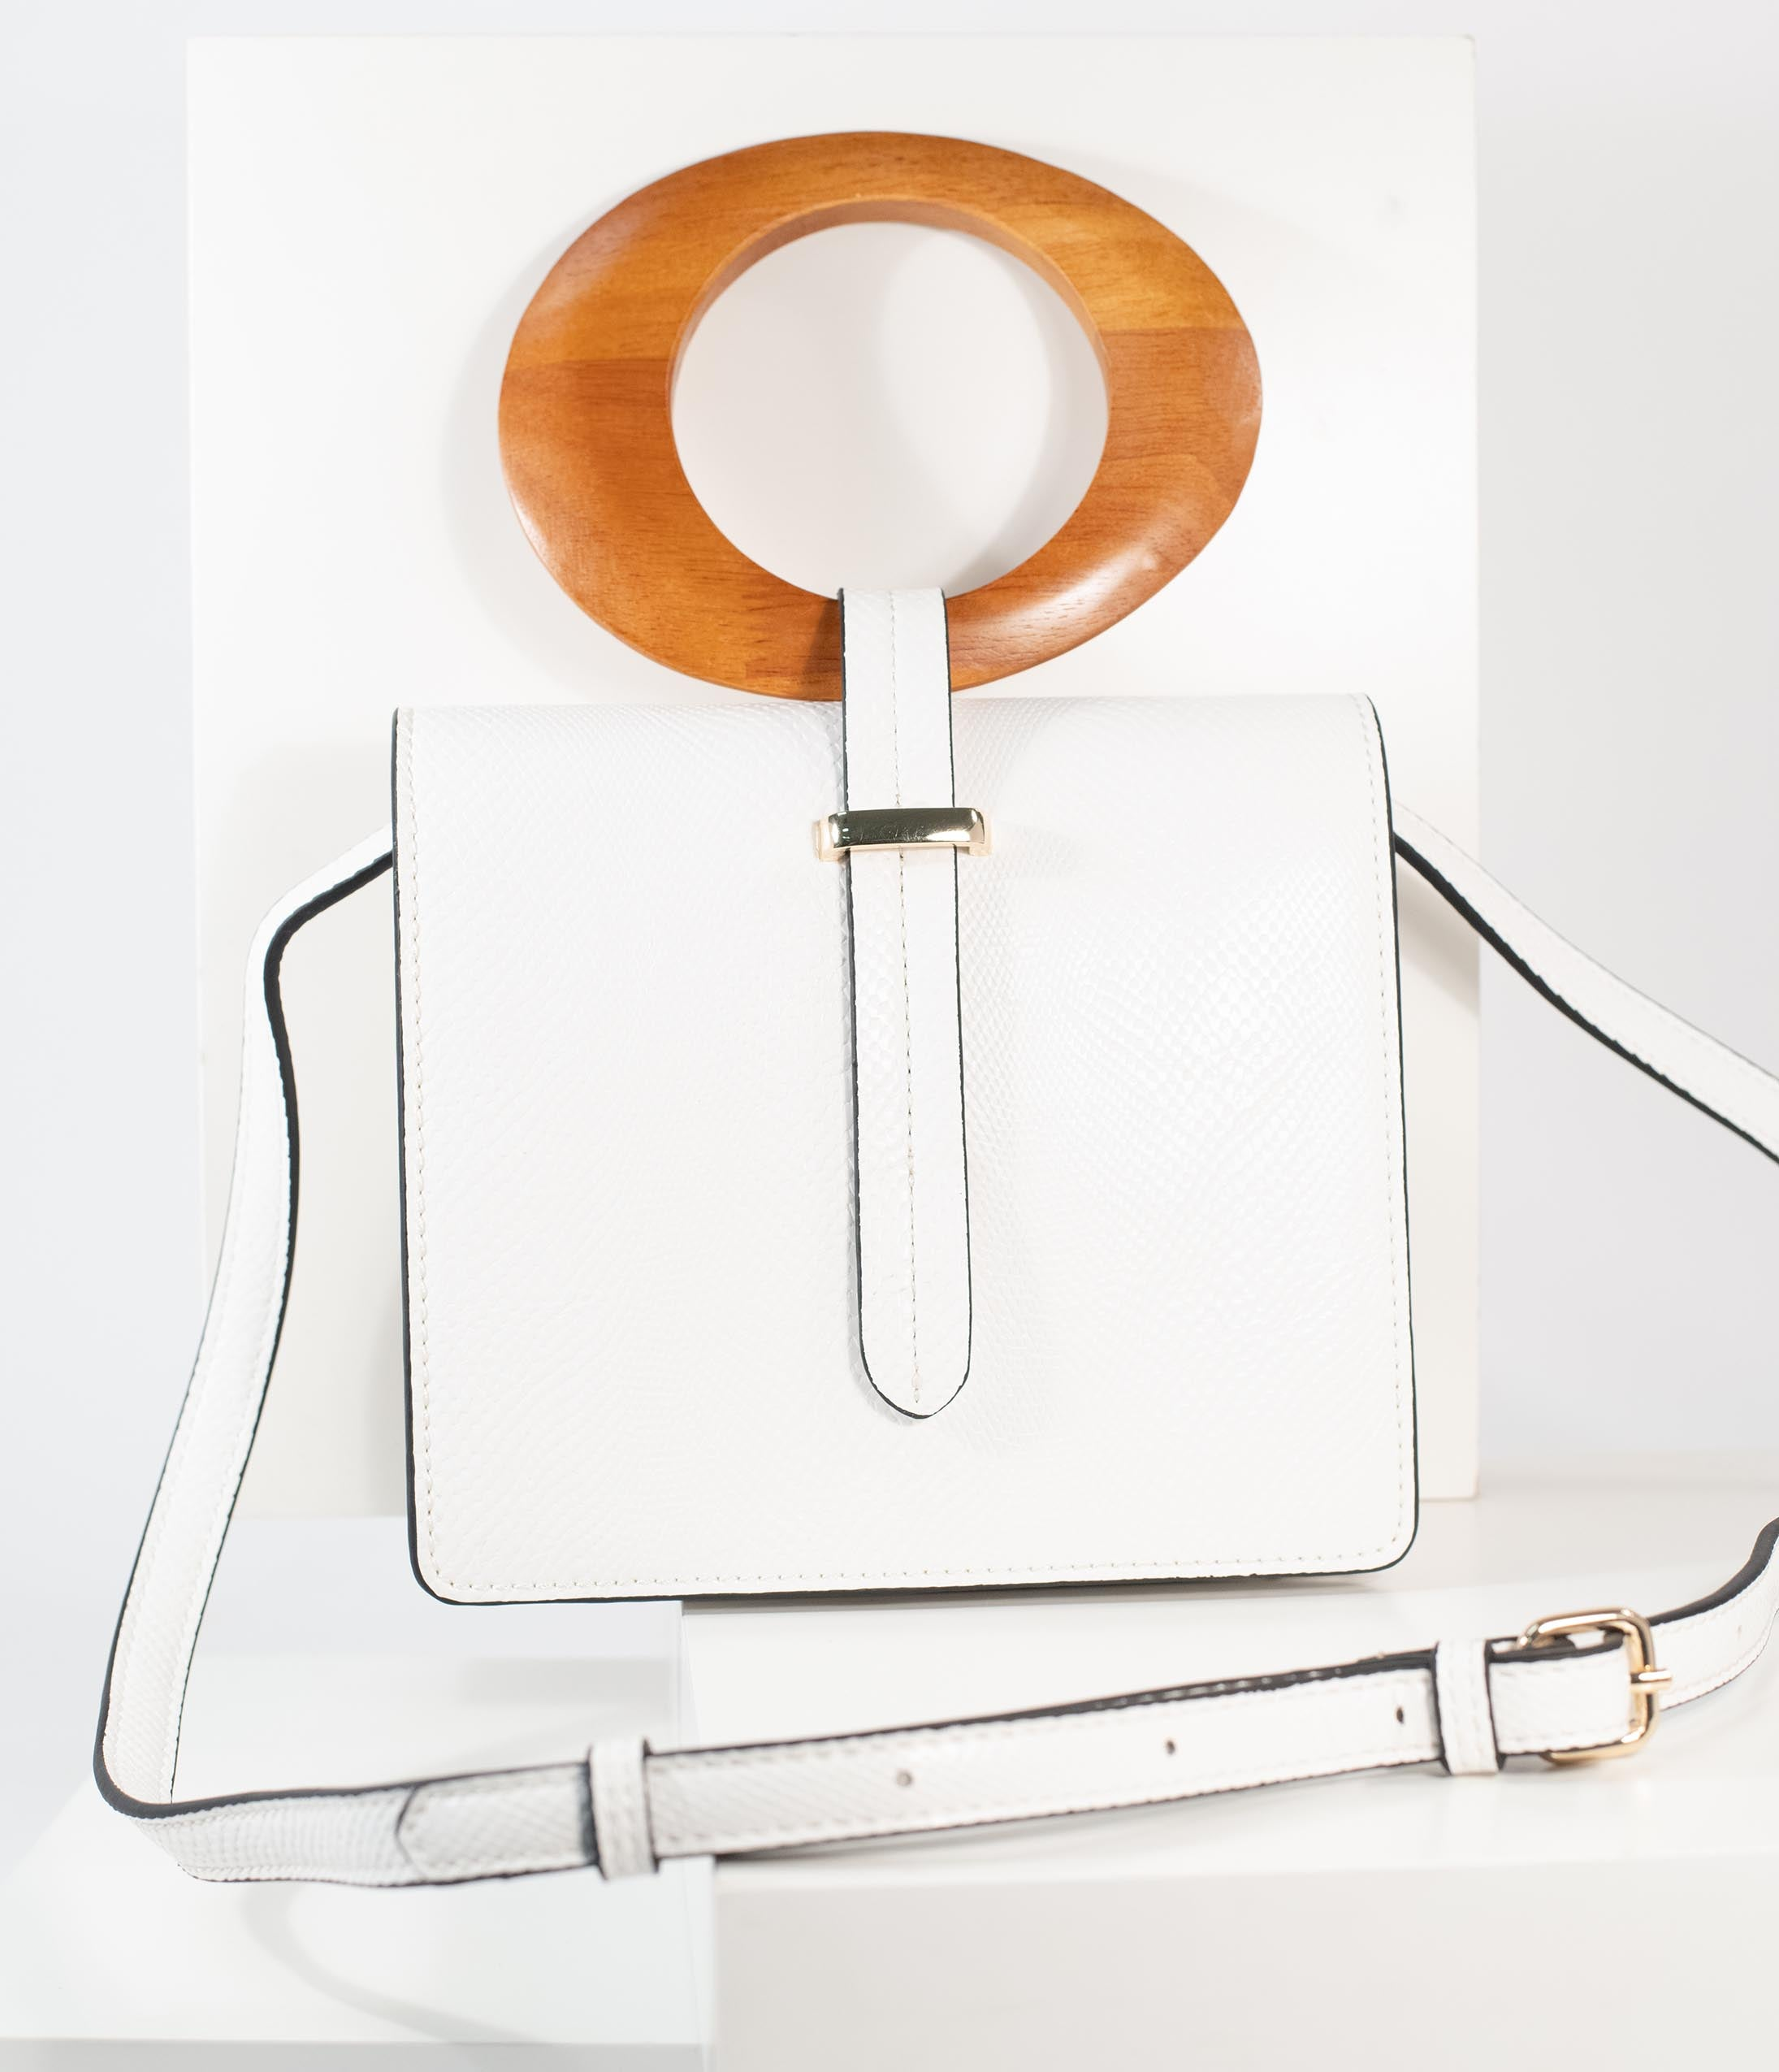 1950s Handbags, Purses, and Evening Bag Styles White Leatherette Wood Handle Crossbody Purse $54.00 AT vintagedancer.com